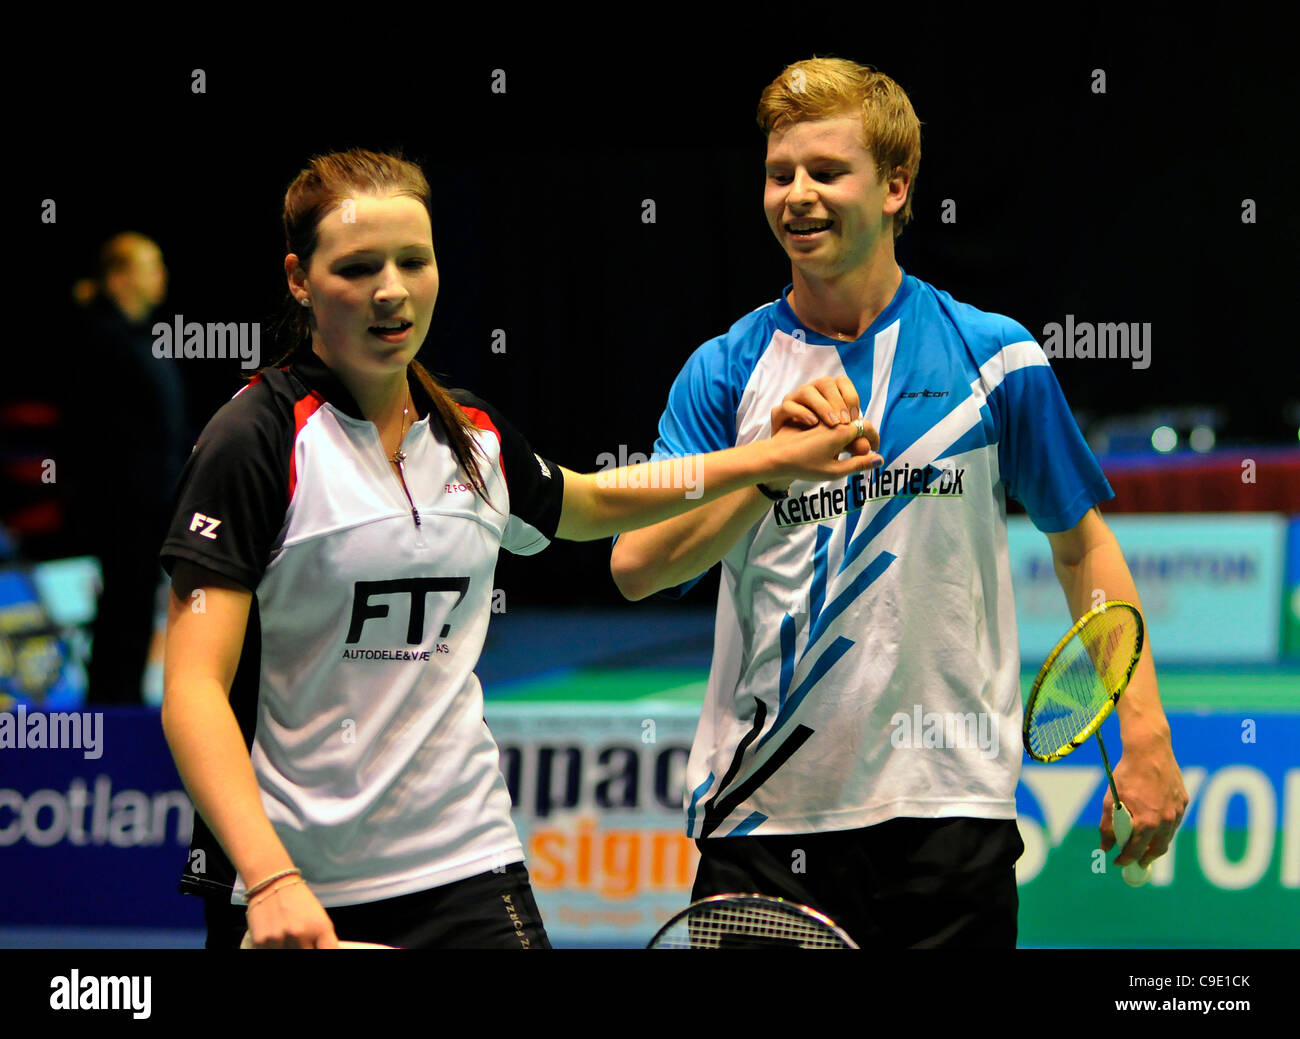 27 11 2011 Glasgow Scotland Scottish International Badminton